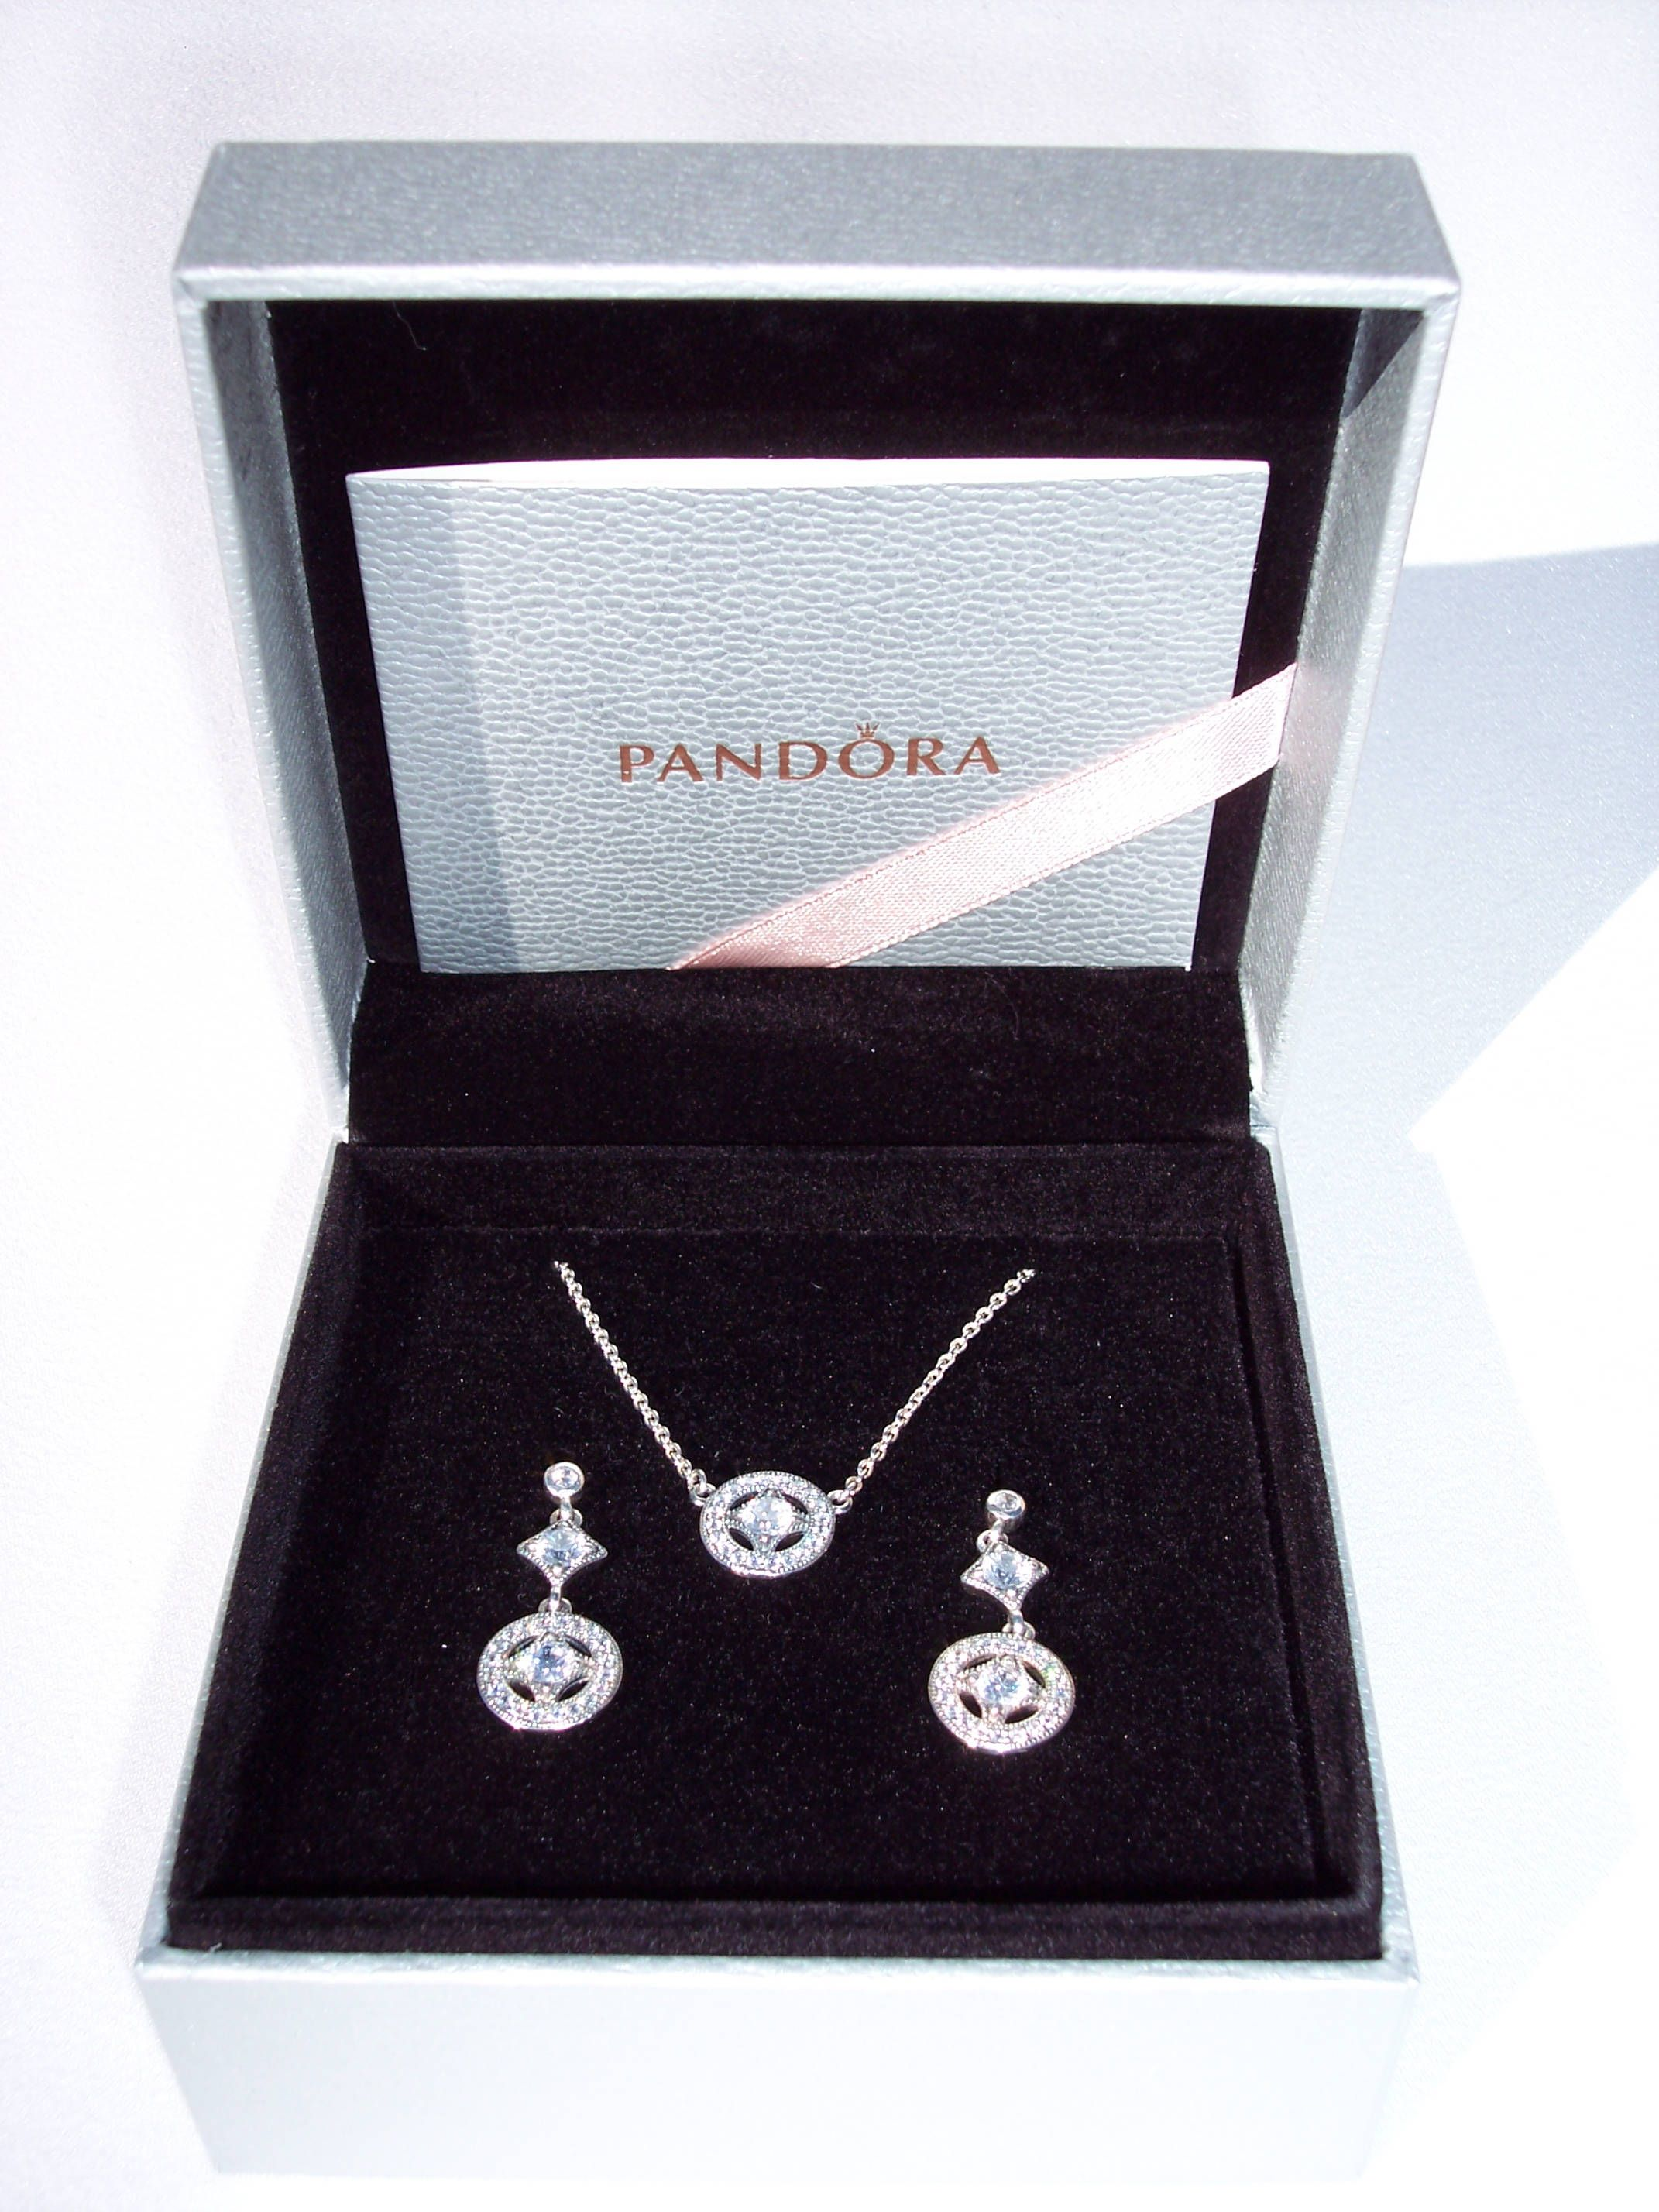 07562ba0a Pandora, Vintage Allure Gift Set, Earring, Necklace, Limited Edition Set,  Clear CZ, Dangle, Studs, Silver, 925 ALE, USB796700